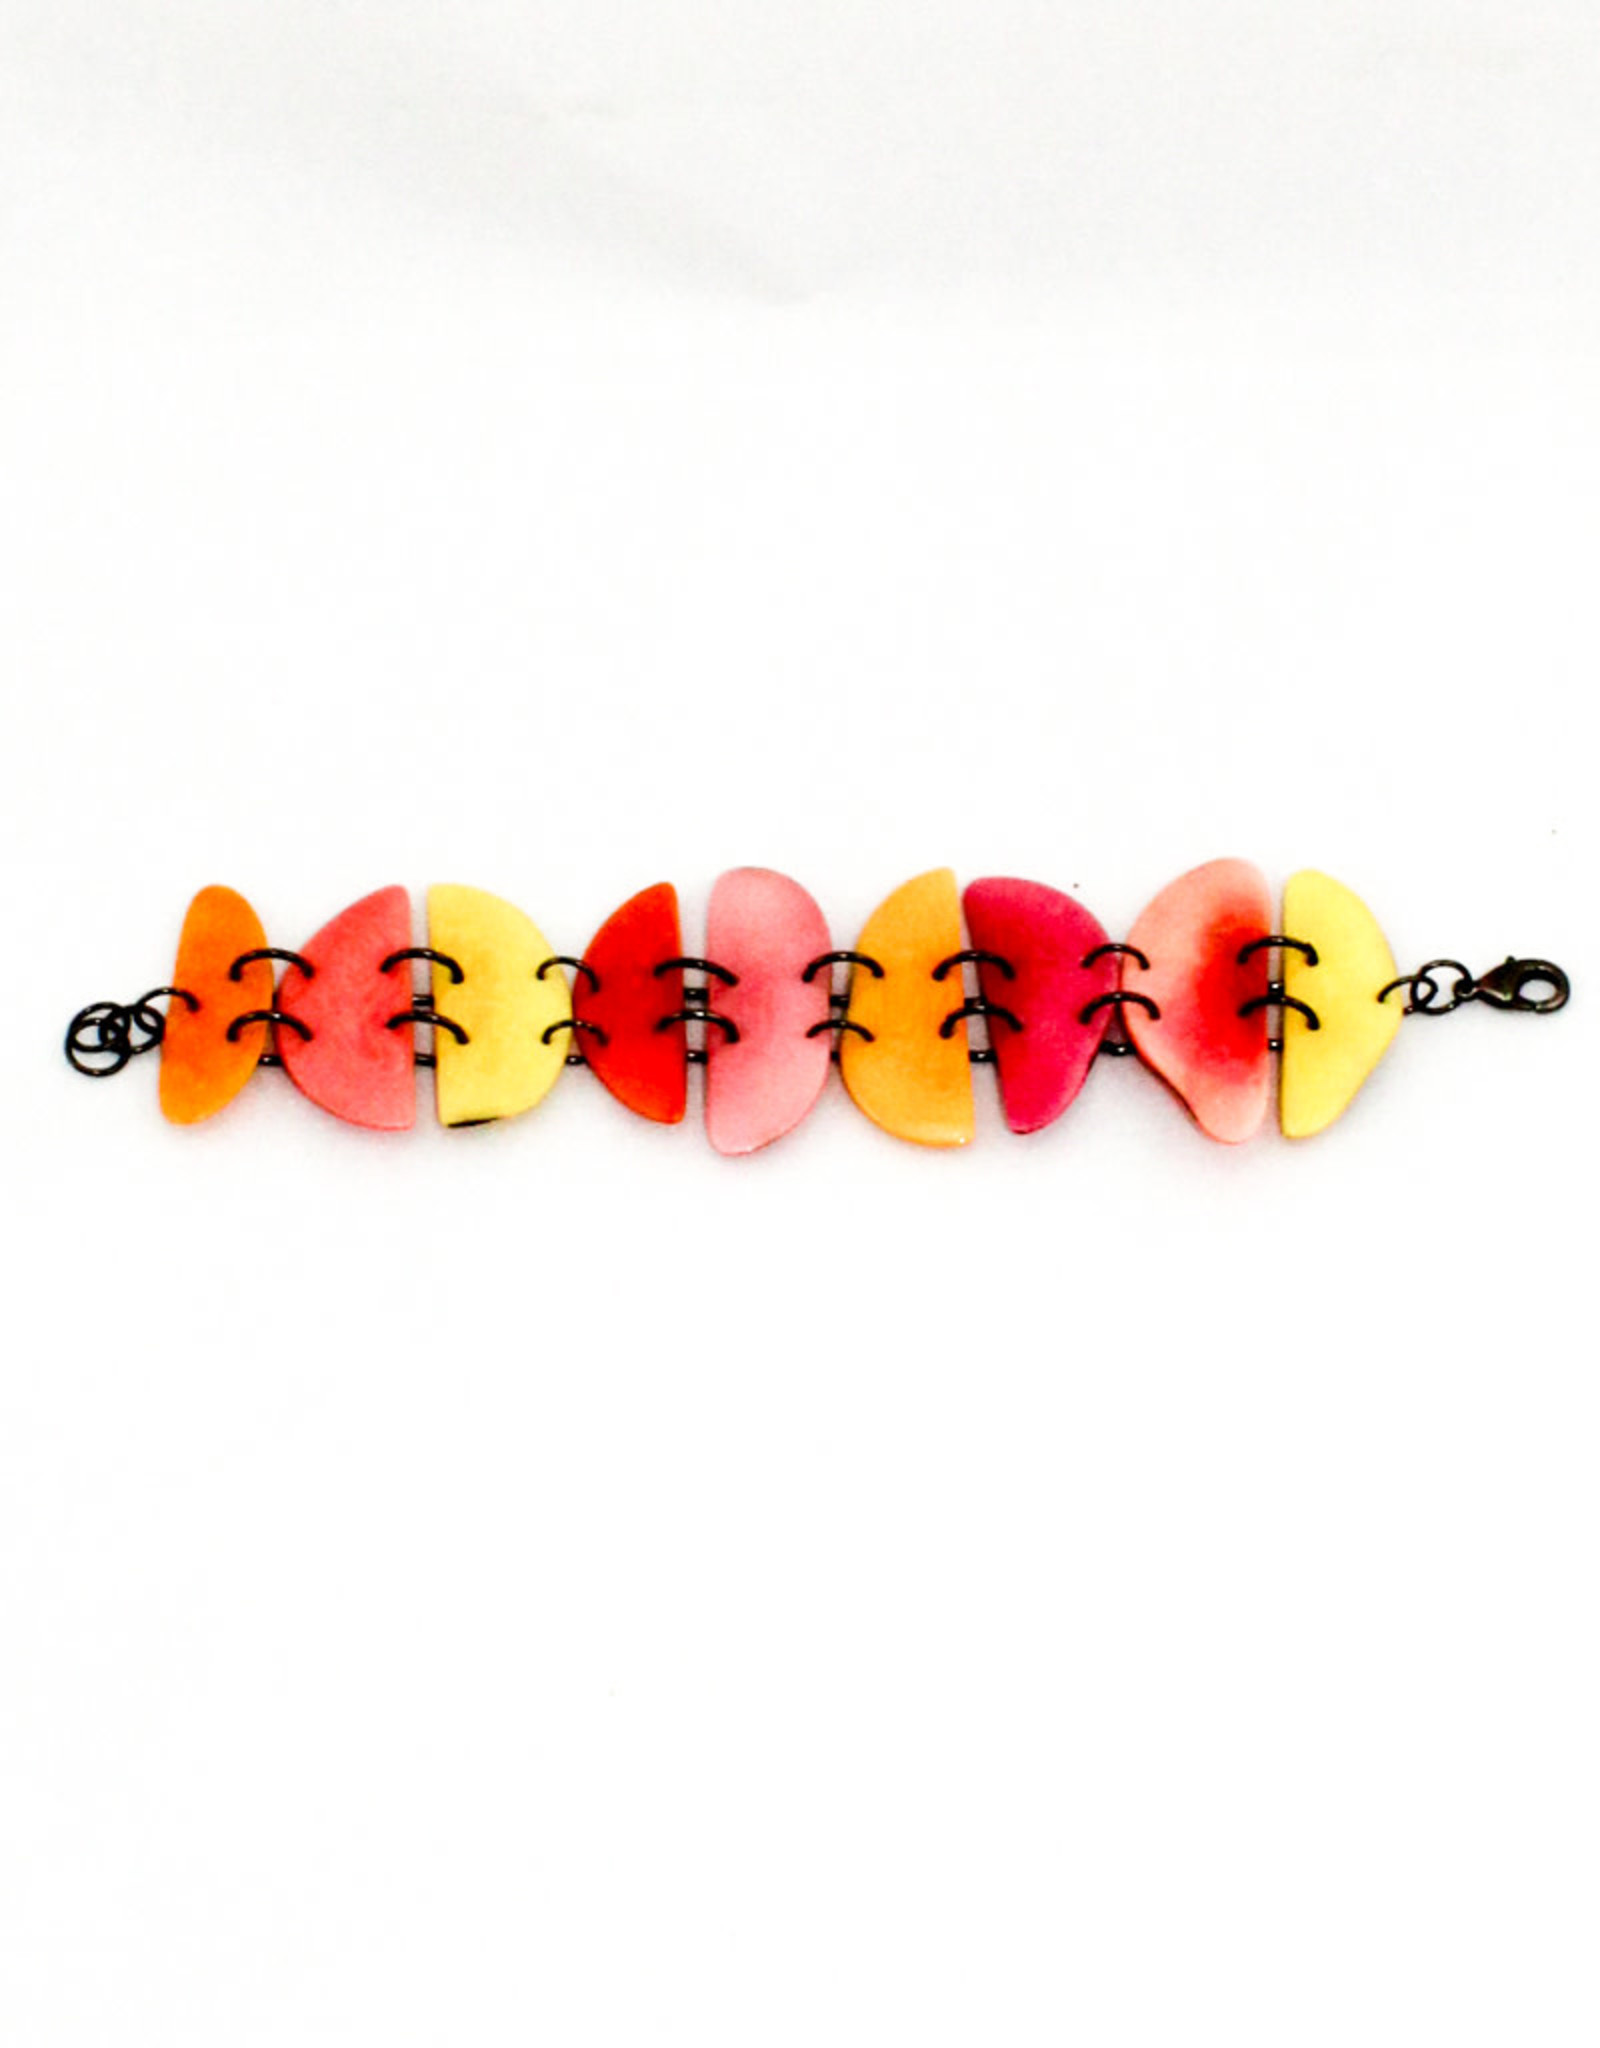 Veronica Riley Martens Crescent Shapes Bracelet